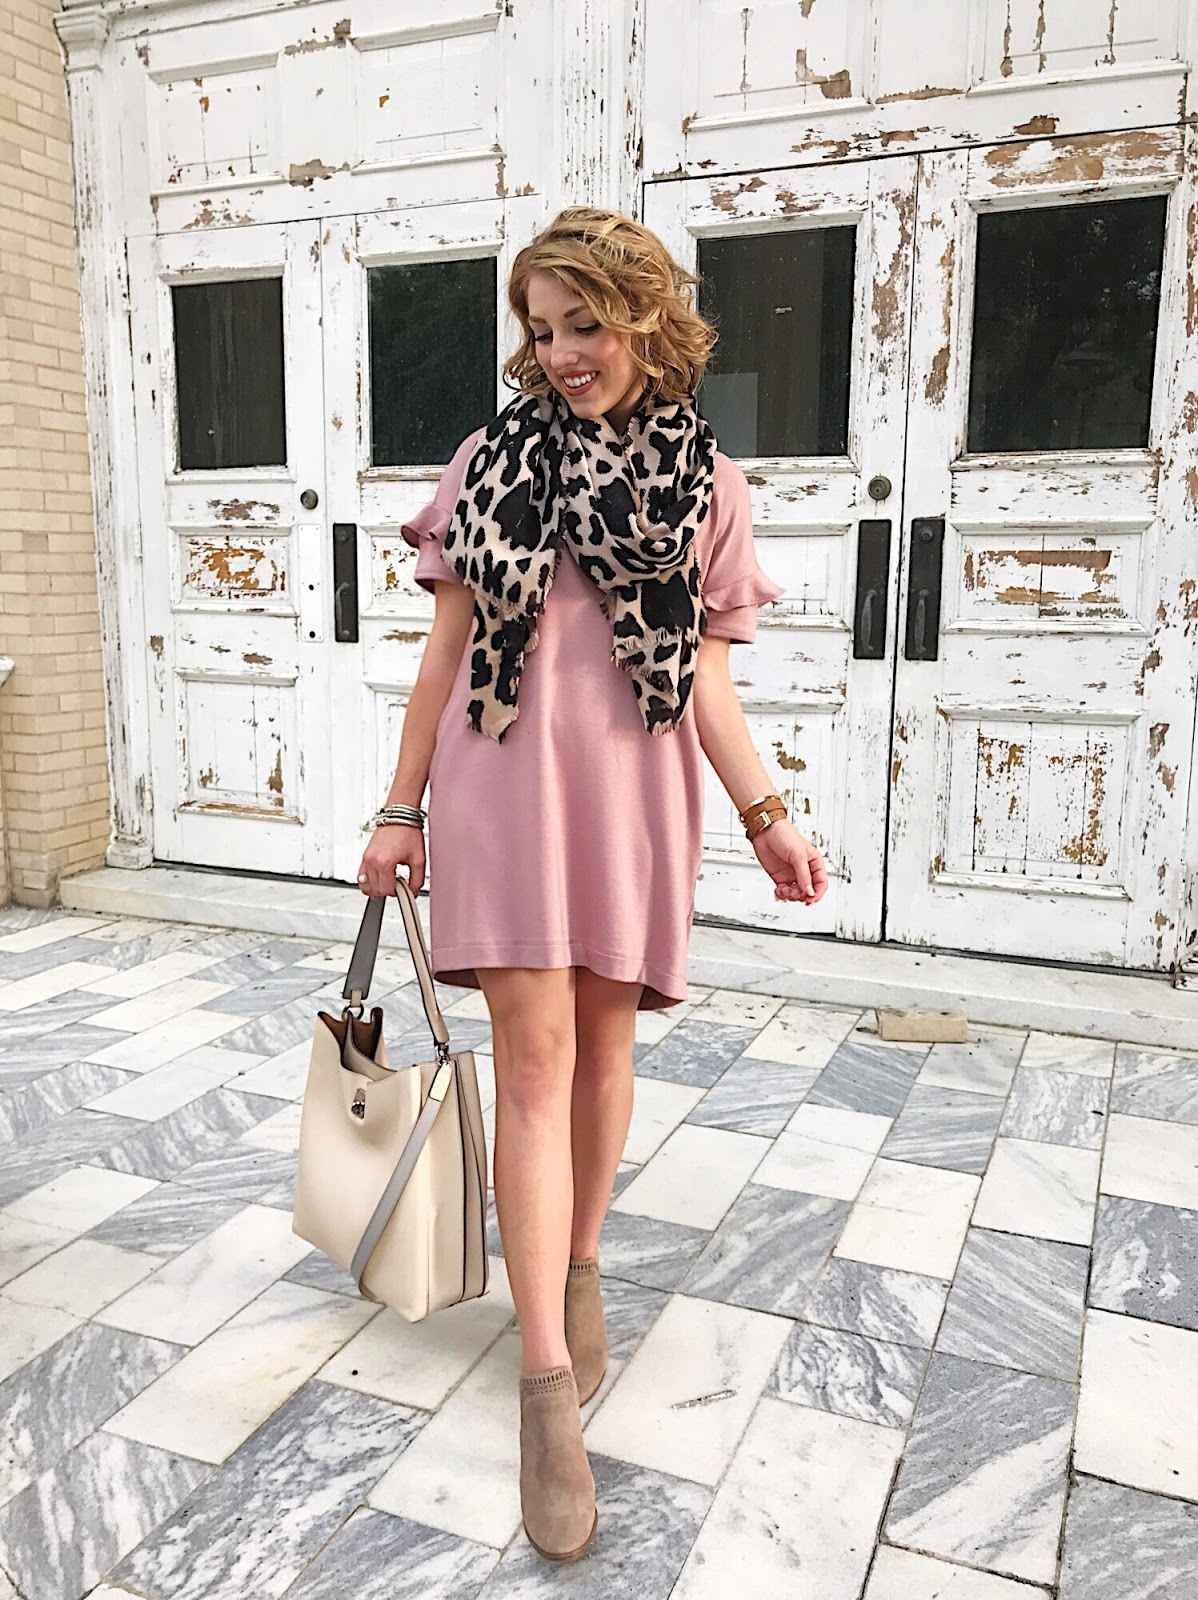 Pink & Leopard - Click through to see more on Something Delightful Blog.